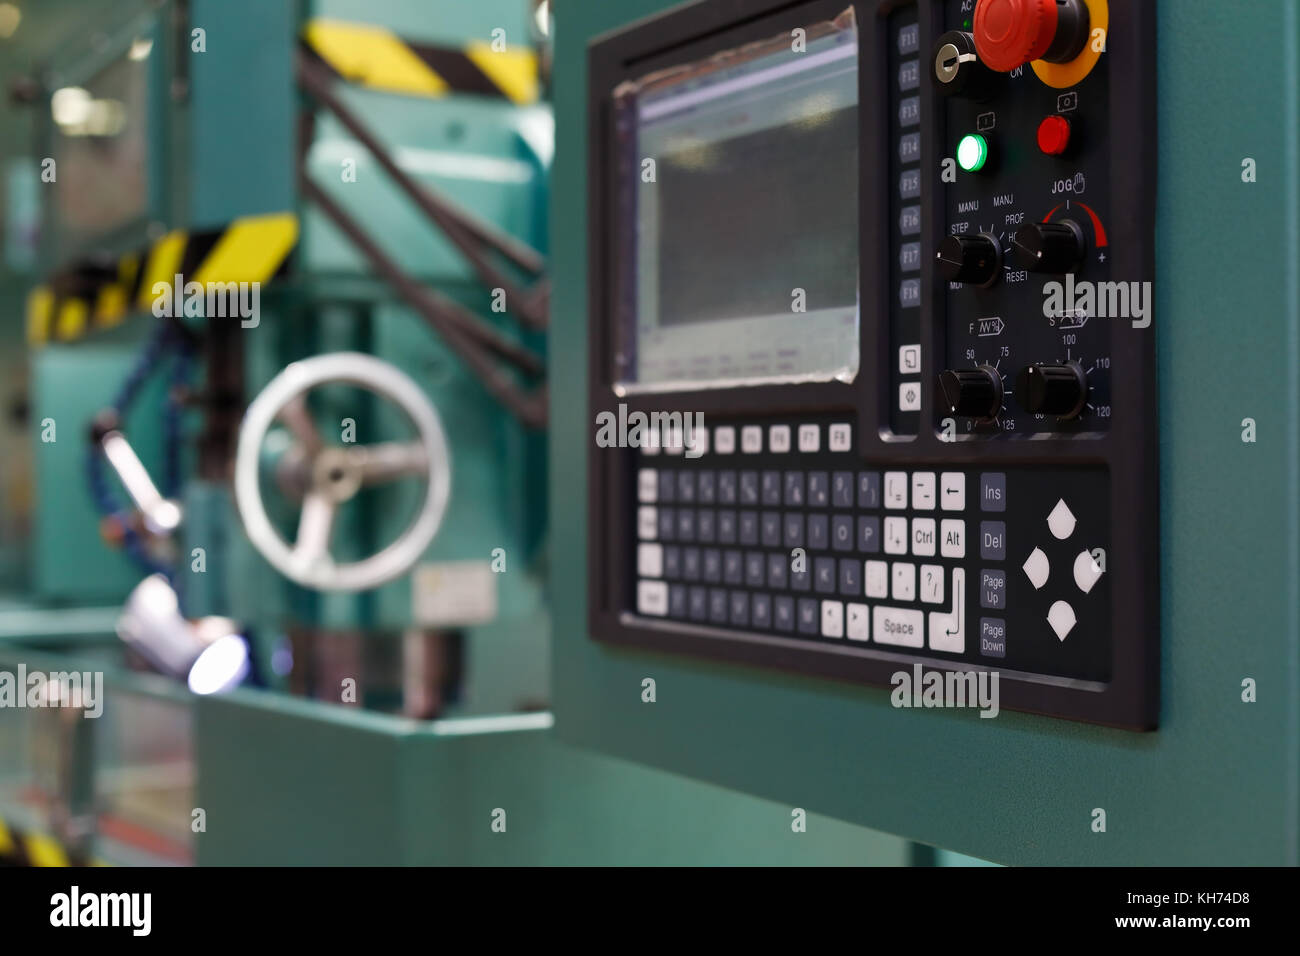 Control panel of the CNC metalworking machine. Selective focus. - Stock Image